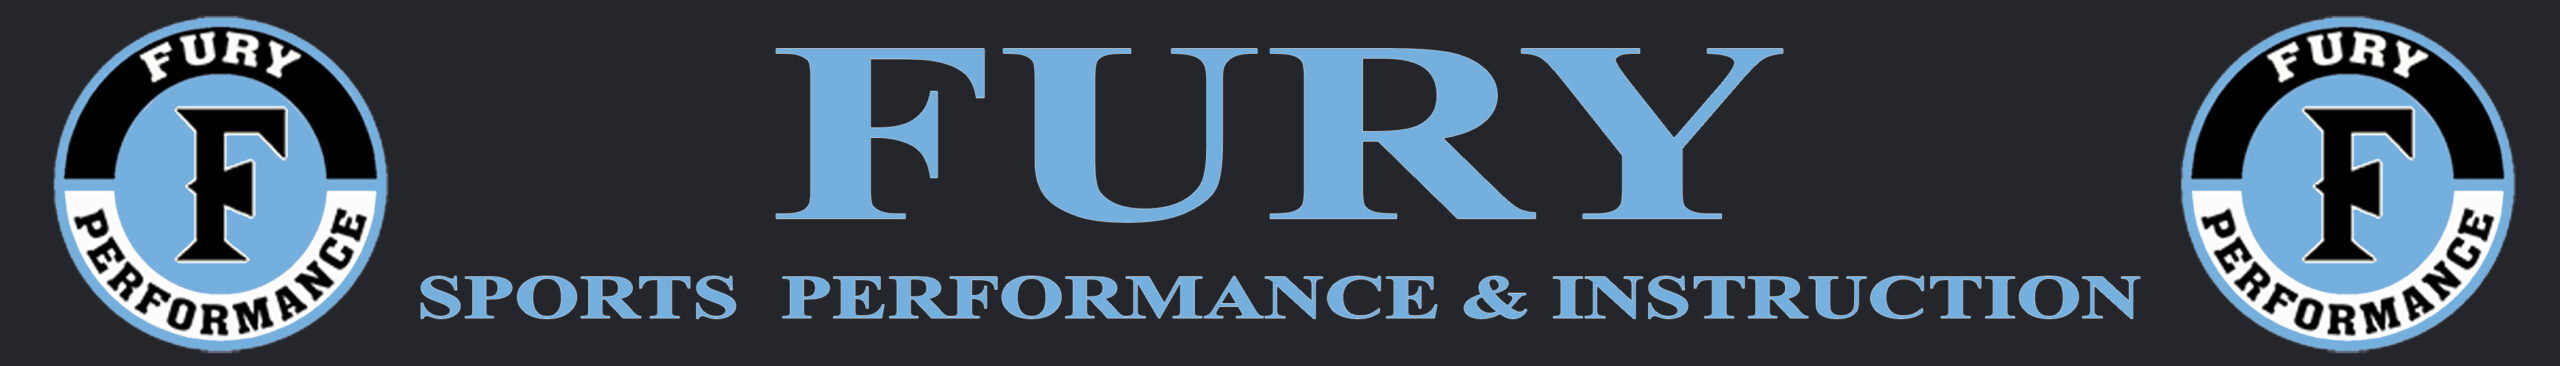 Fury Performance Specific Camps & Clinics, Fury Performance Academy